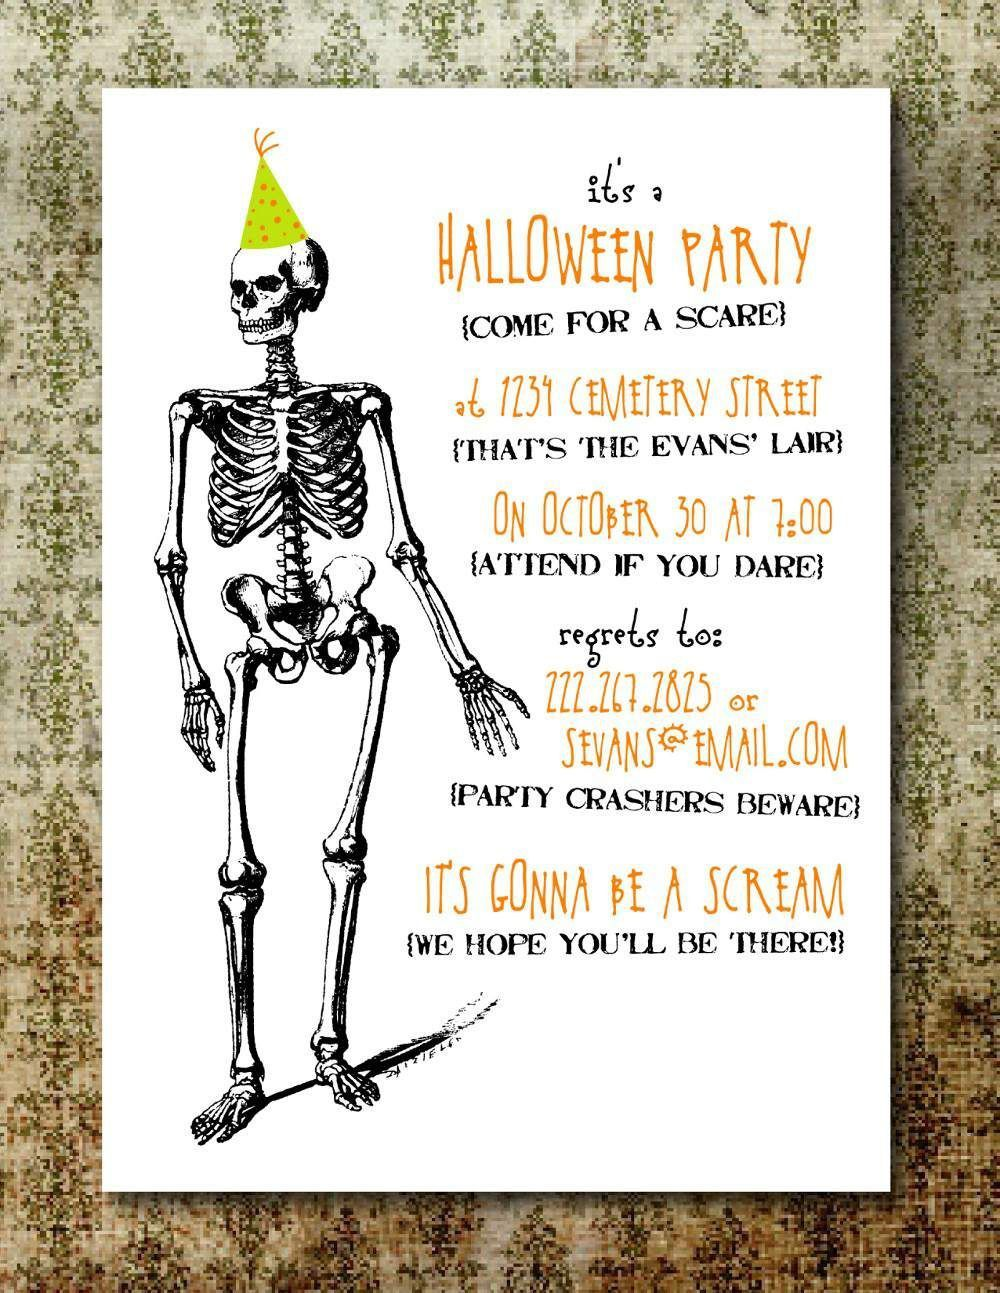 007 Excellent Halloween Party Invite Template Photo  Templates - Free Printable Spooky Invitation BirthdayFull